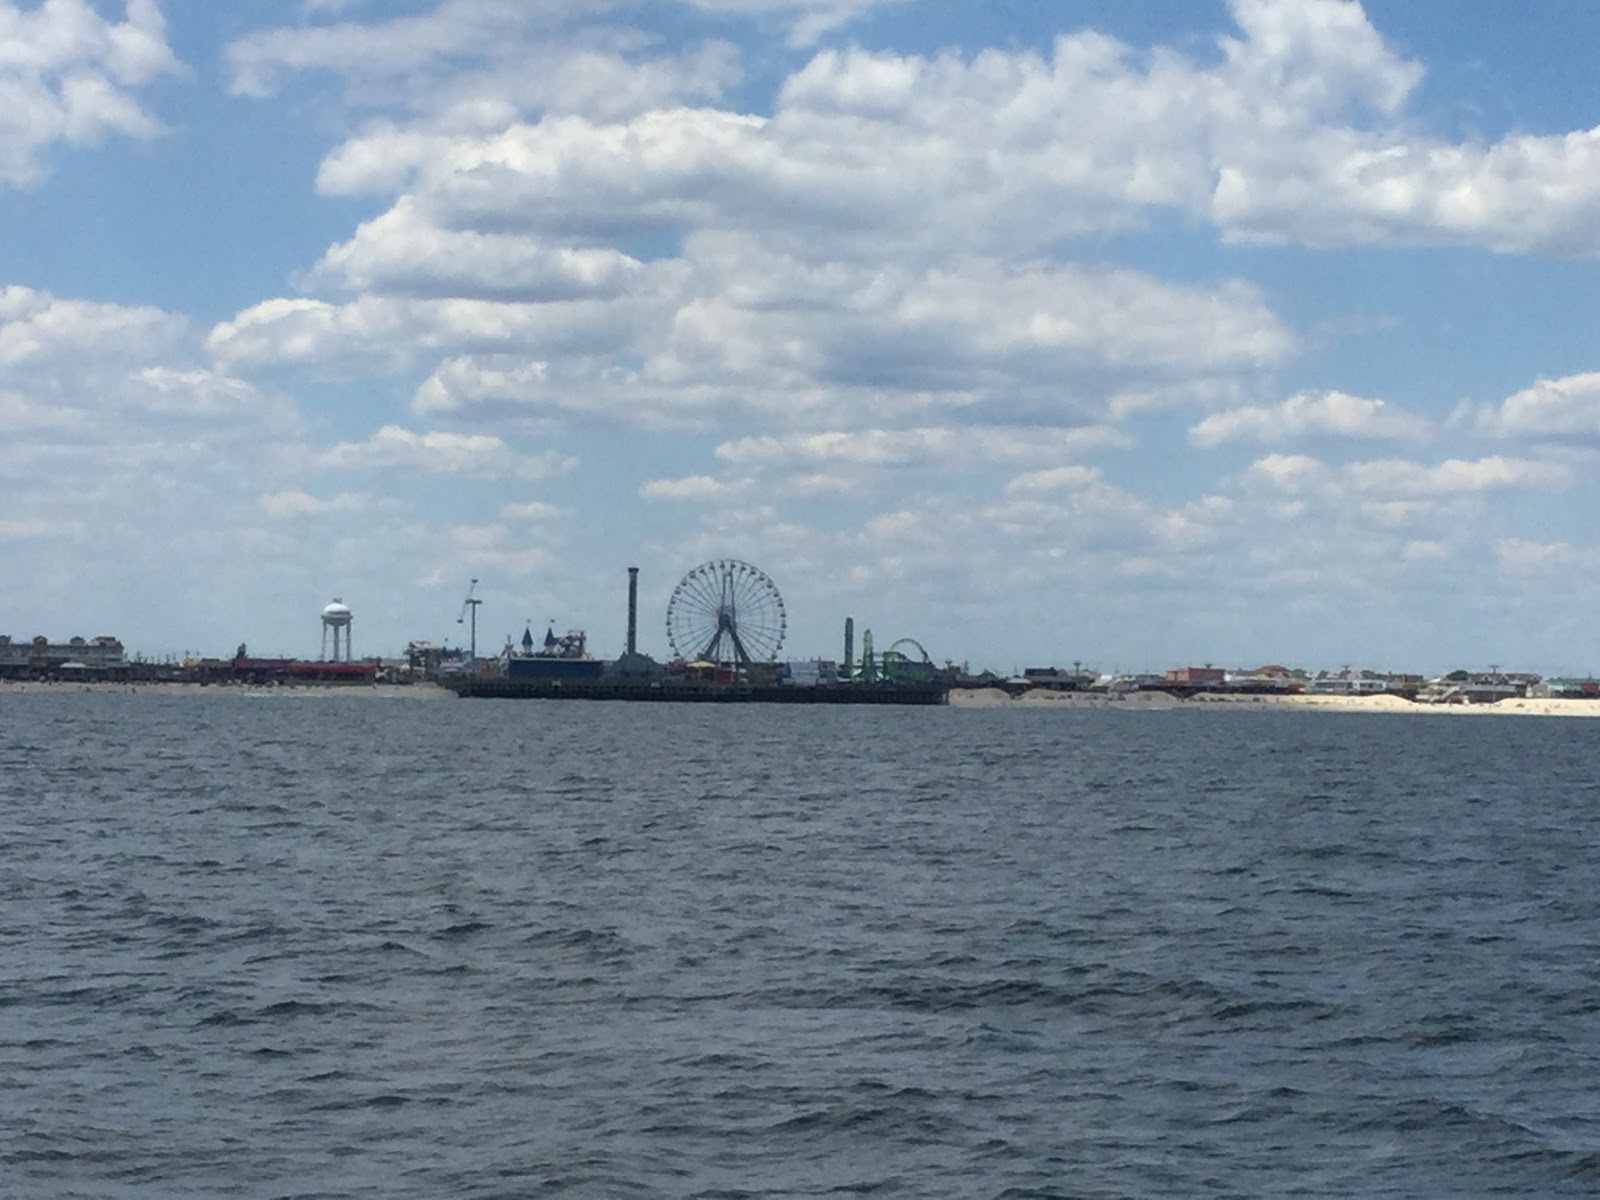 Inspeyered adventures june 2017 we headed into the atlantic and cruised north along the jersey shore in light wind and waves for a very comfortable cruise to the manasquan inlet nvjuhfo Image collections